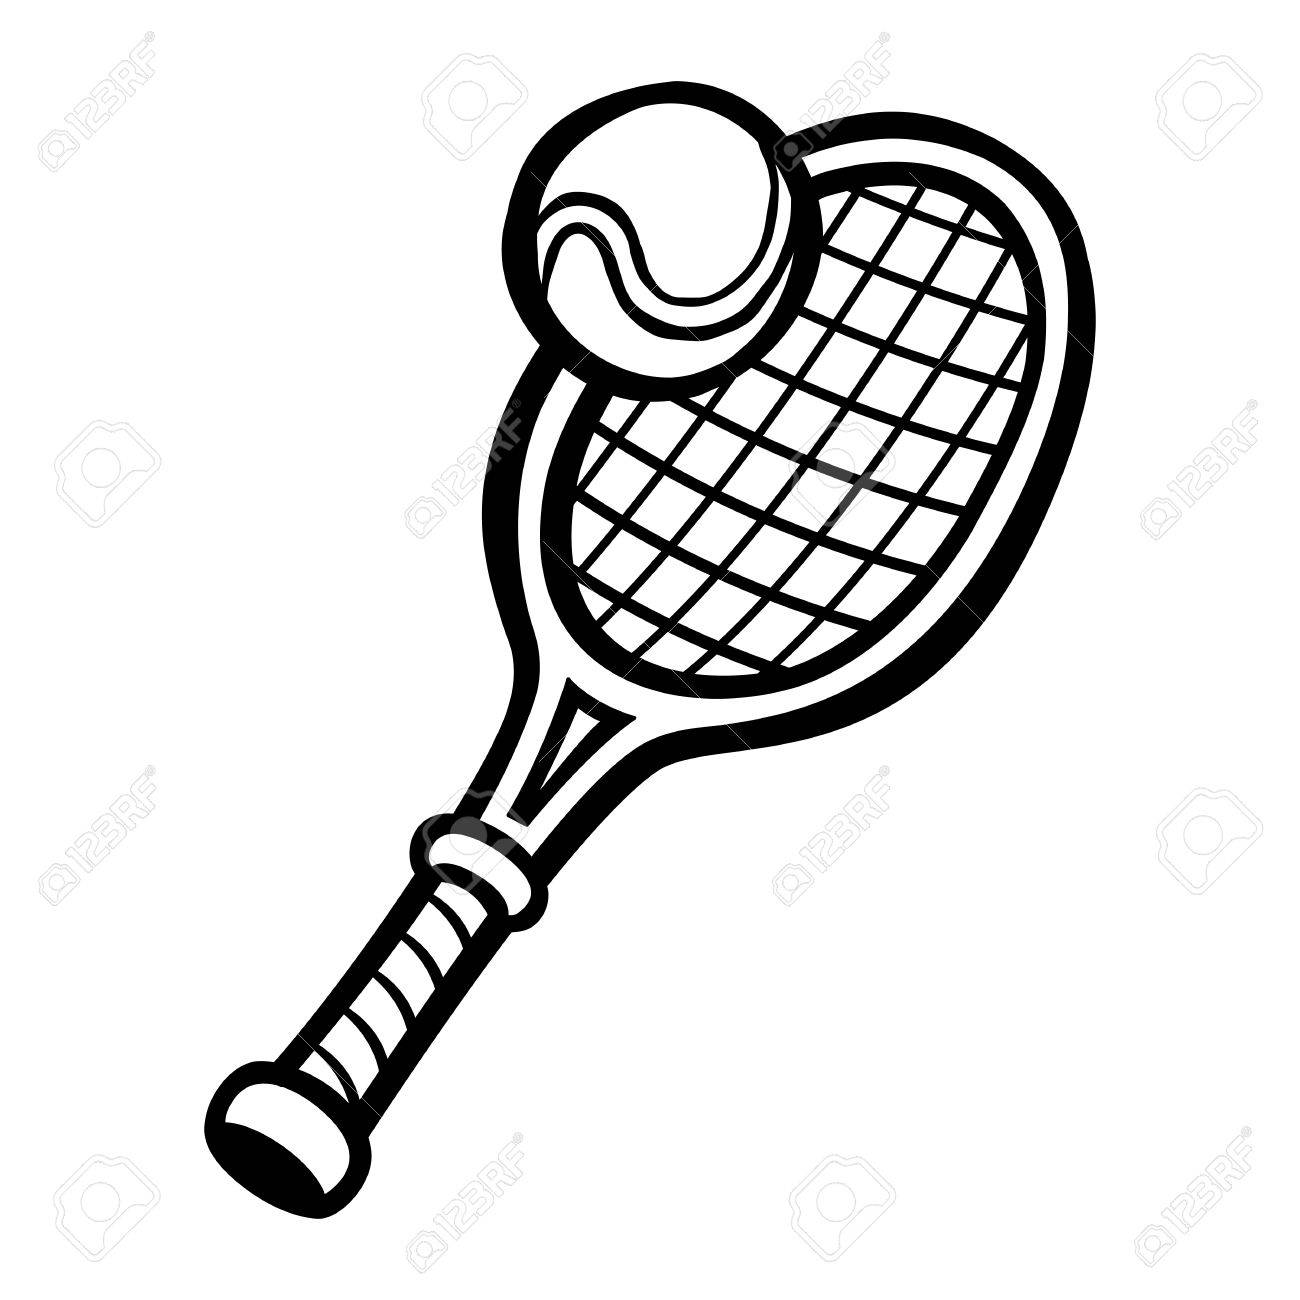 1300x1300 Tennis Ball And Racket Black And White Free Download Clip Art